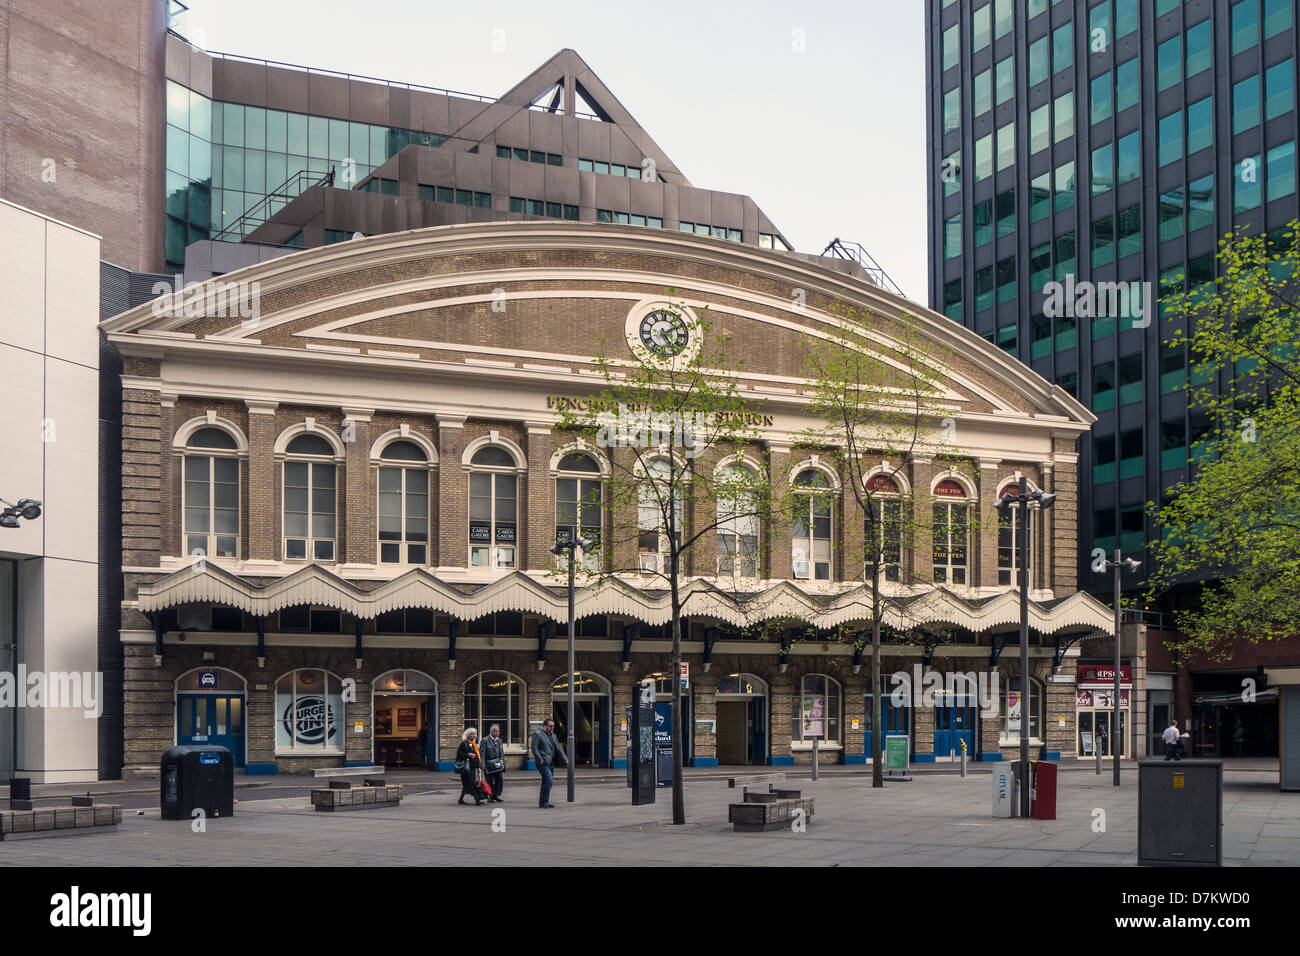 Front of Fenchurch Street Railway Station - Stock Image